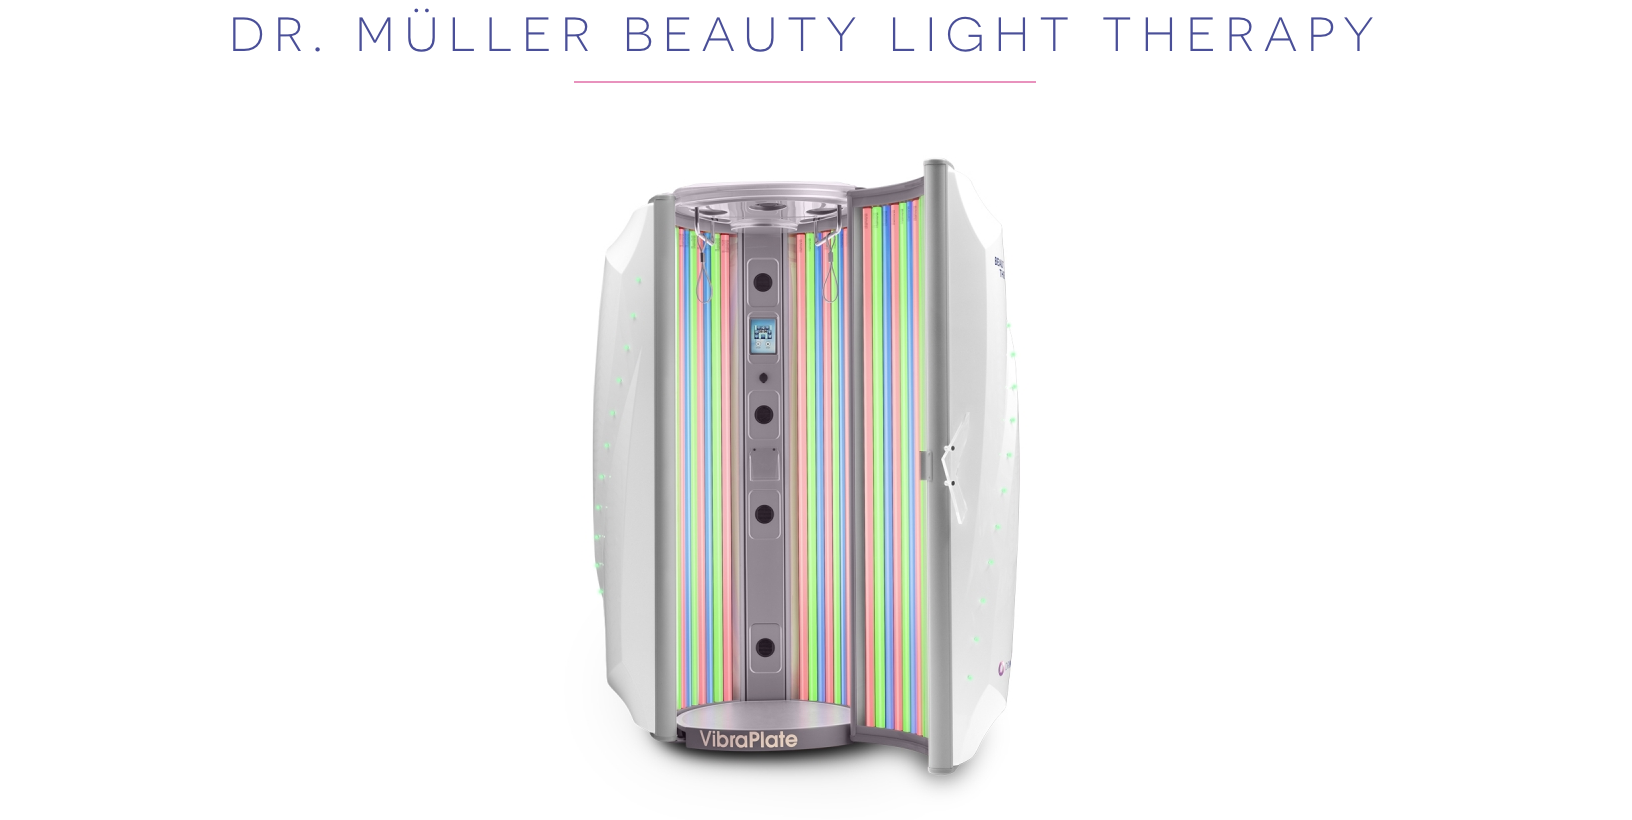 Dr. Müller Beauty Light Therapy